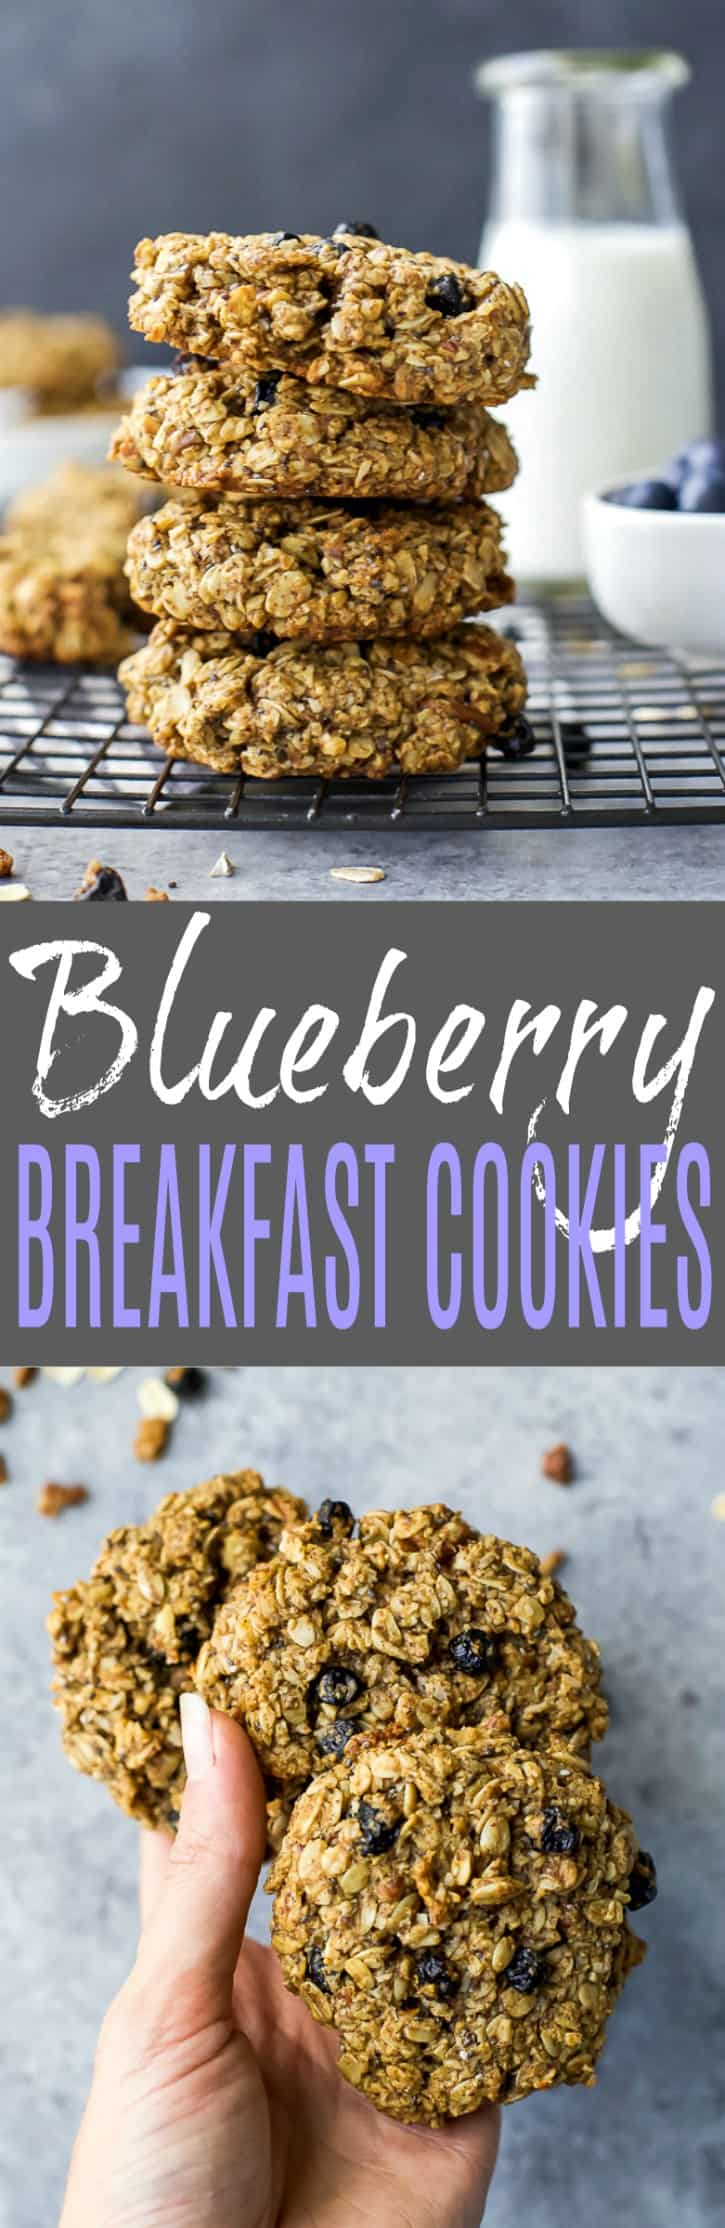 A collage of two images of Blueberry Breakfast Cookies with the recipe title text